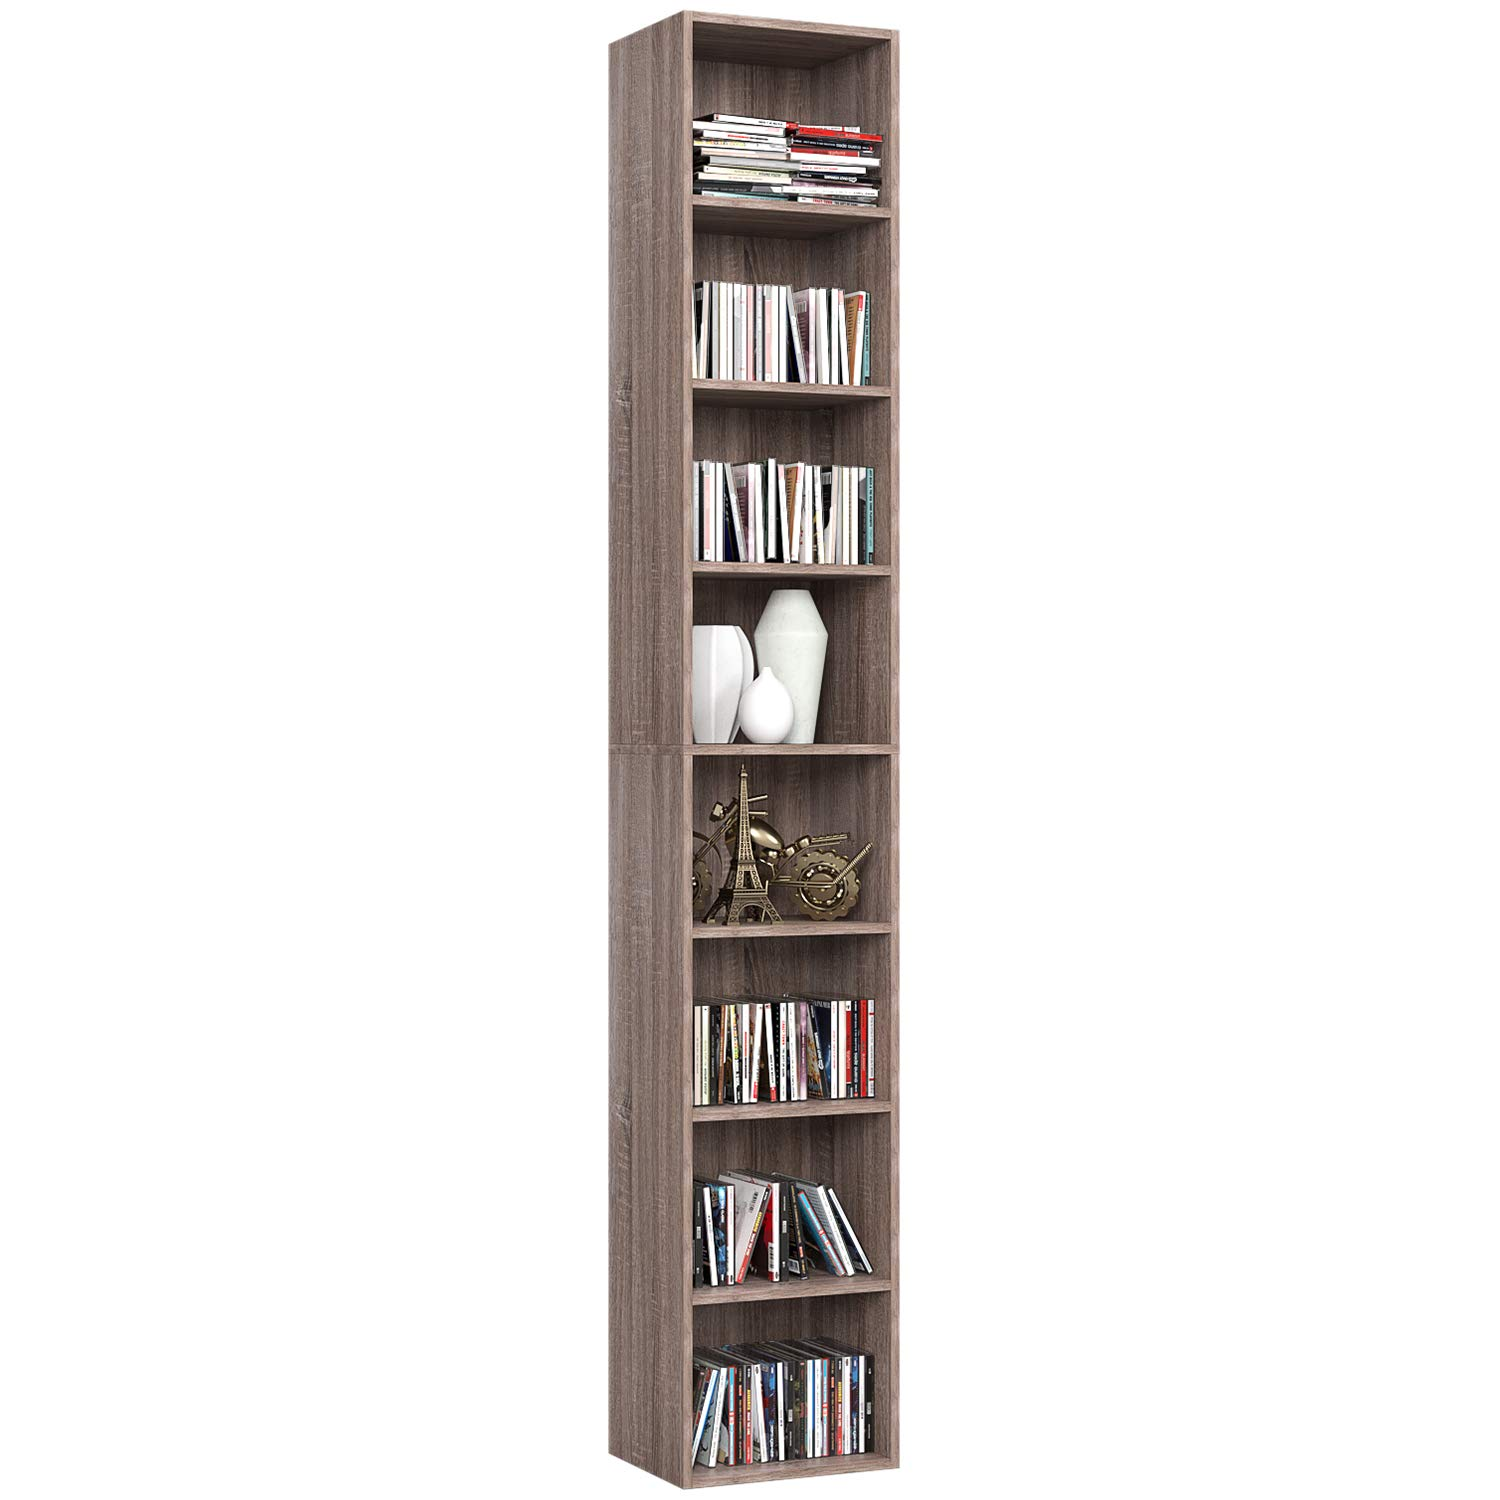 Homfa CD DVD Storage Tower Rack, 8-Tier Wooden Media Storage Organizer Cabinet Unit, 71 Inches Height Bookshelf Display Bookcase with Adjustable Shelves for CDs, Books, Video Games, Arts, Oak by Homfa